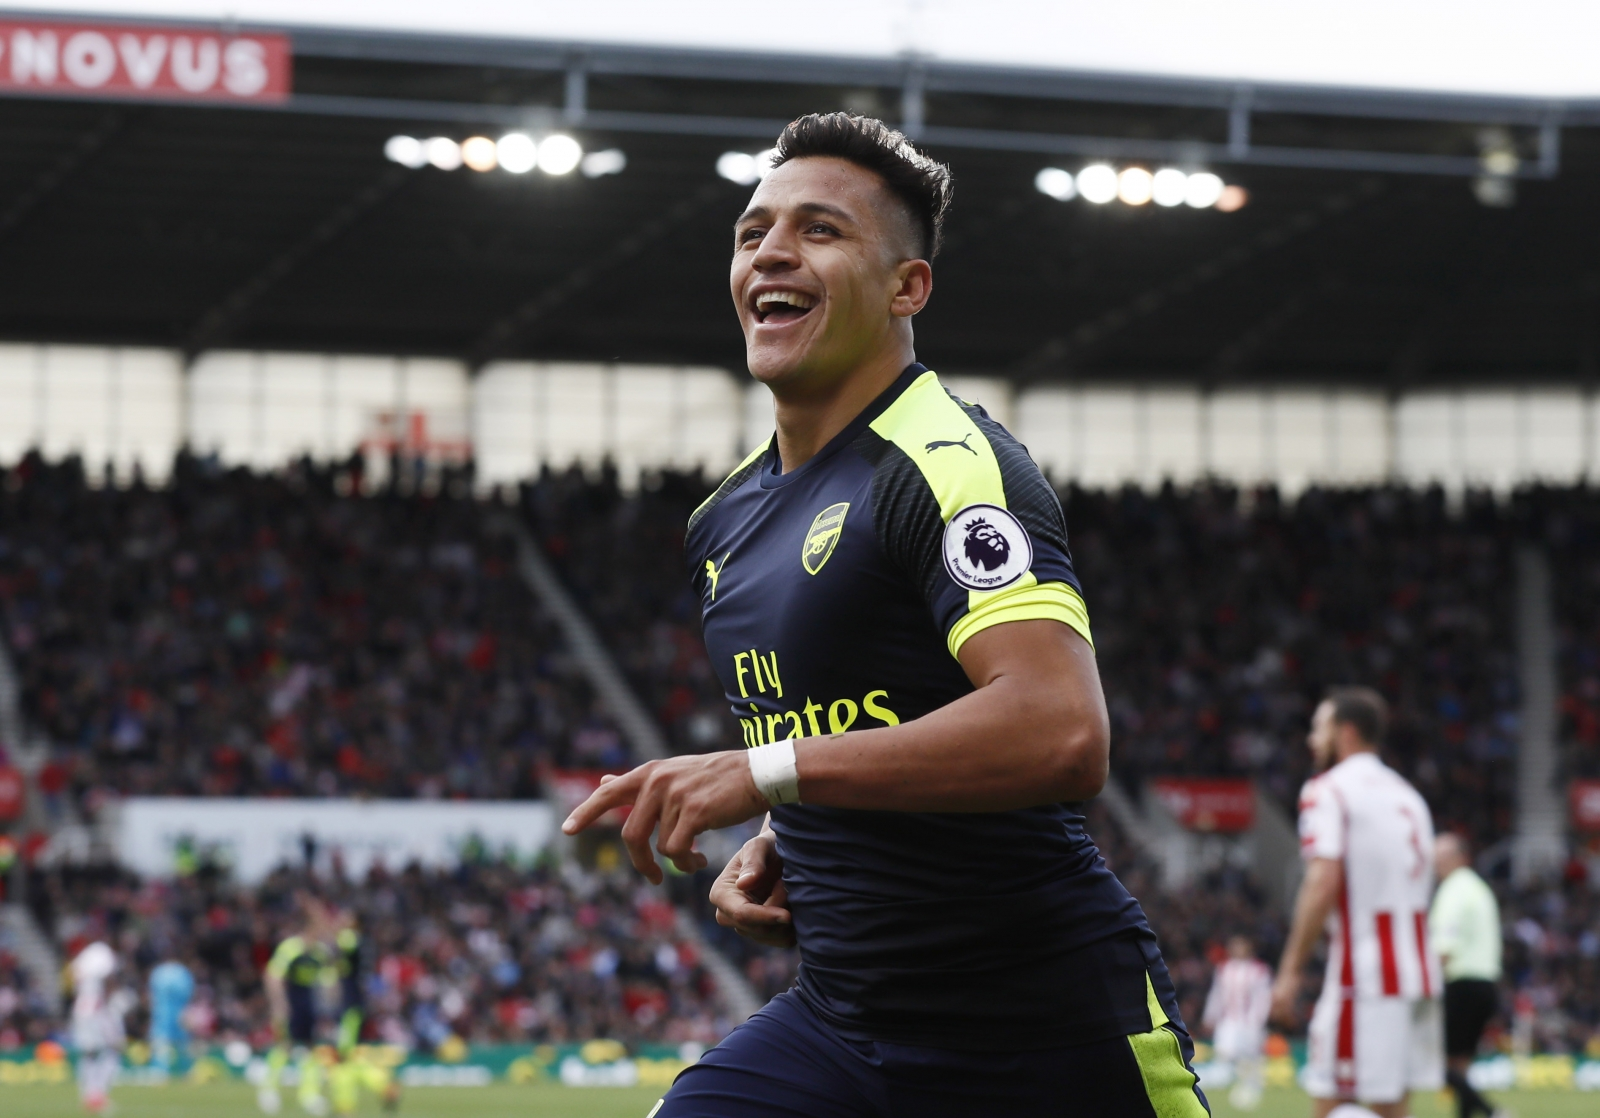 Arsenal 2-0 Sunderland: Watch highlights as Alexis Sanchez scores twice